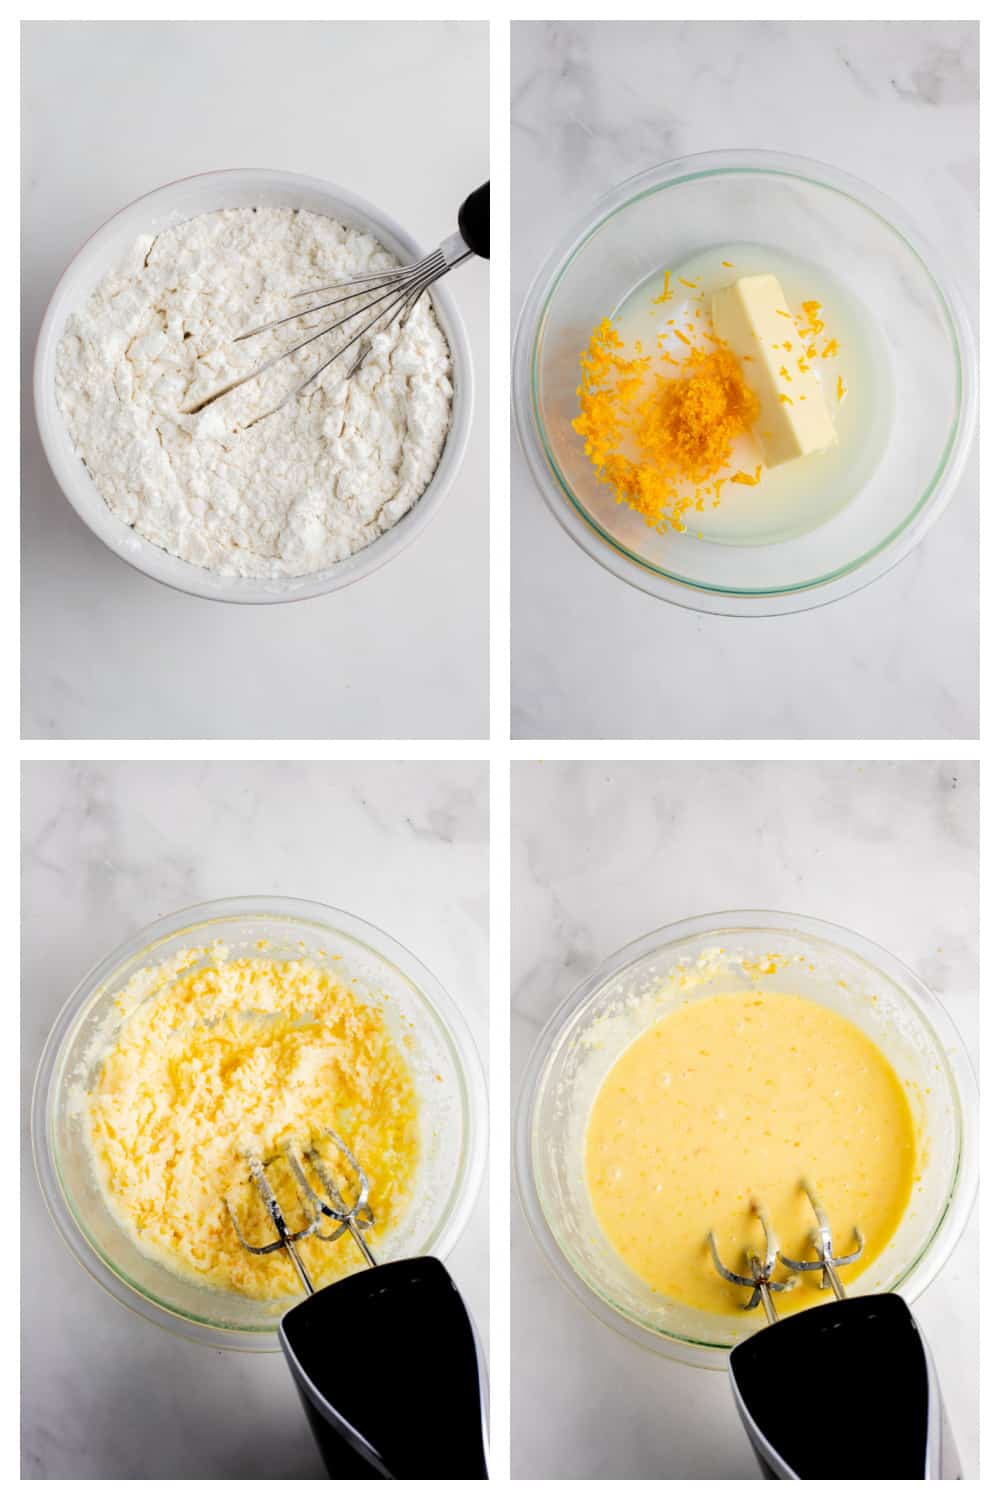 step by step photos of making cake batter